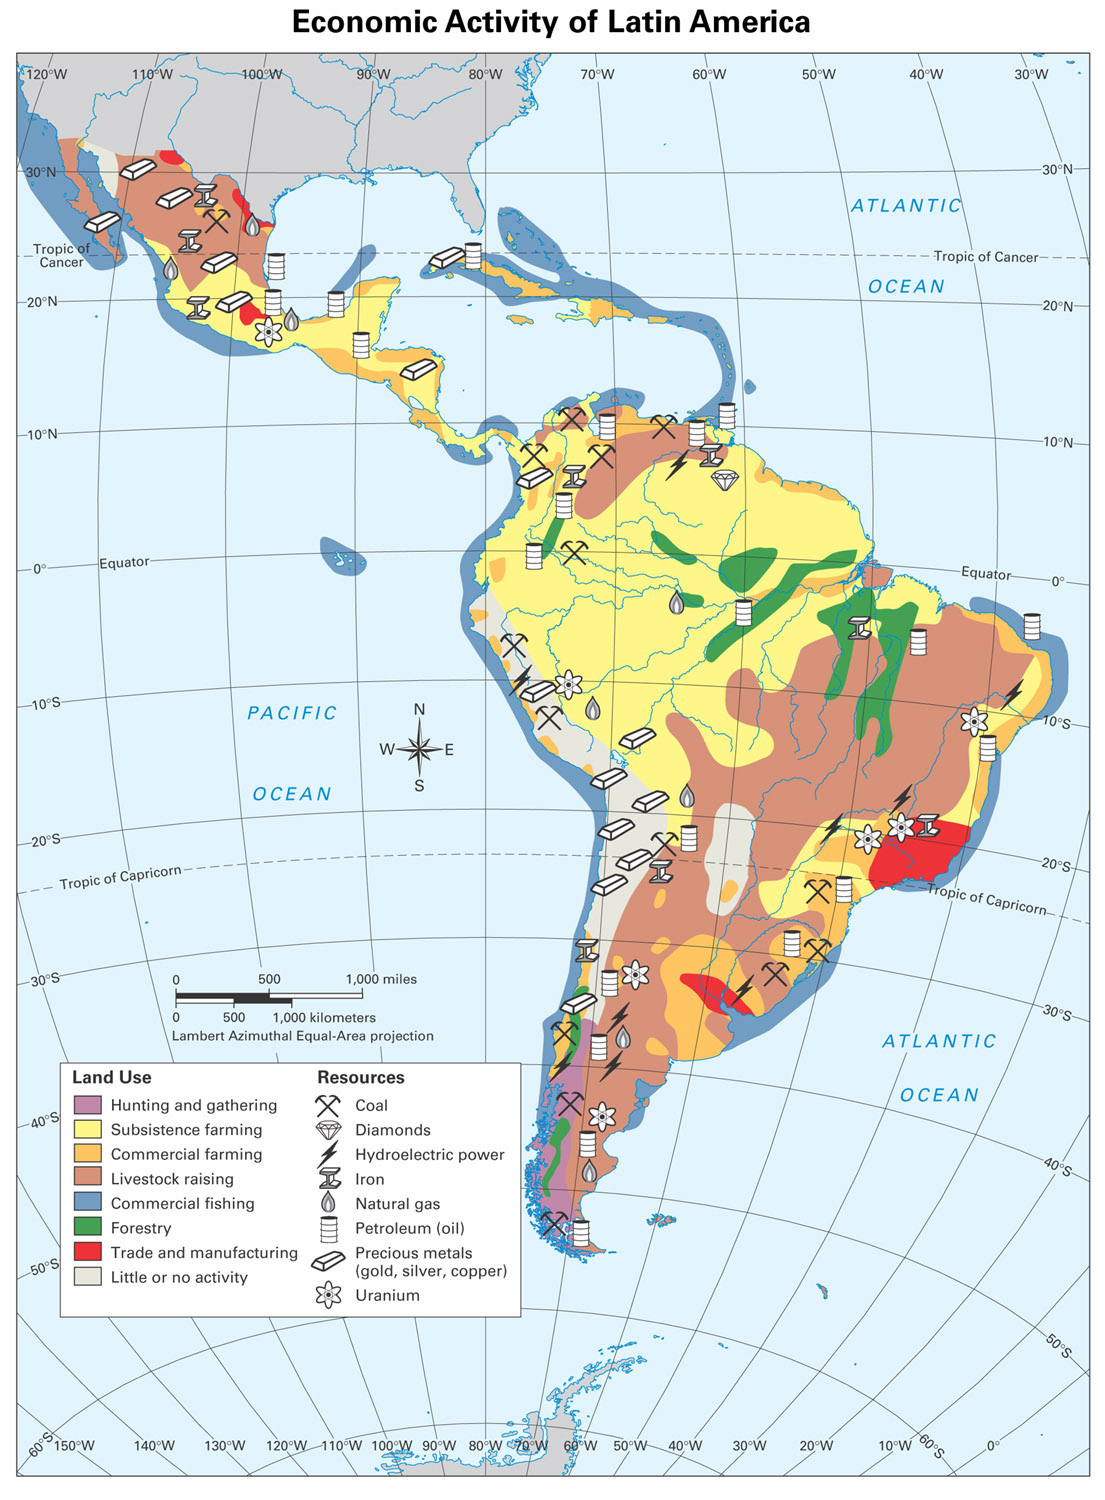 Economic Resources Map of USA http://brewerda.edublogs.org/about/latin-america/